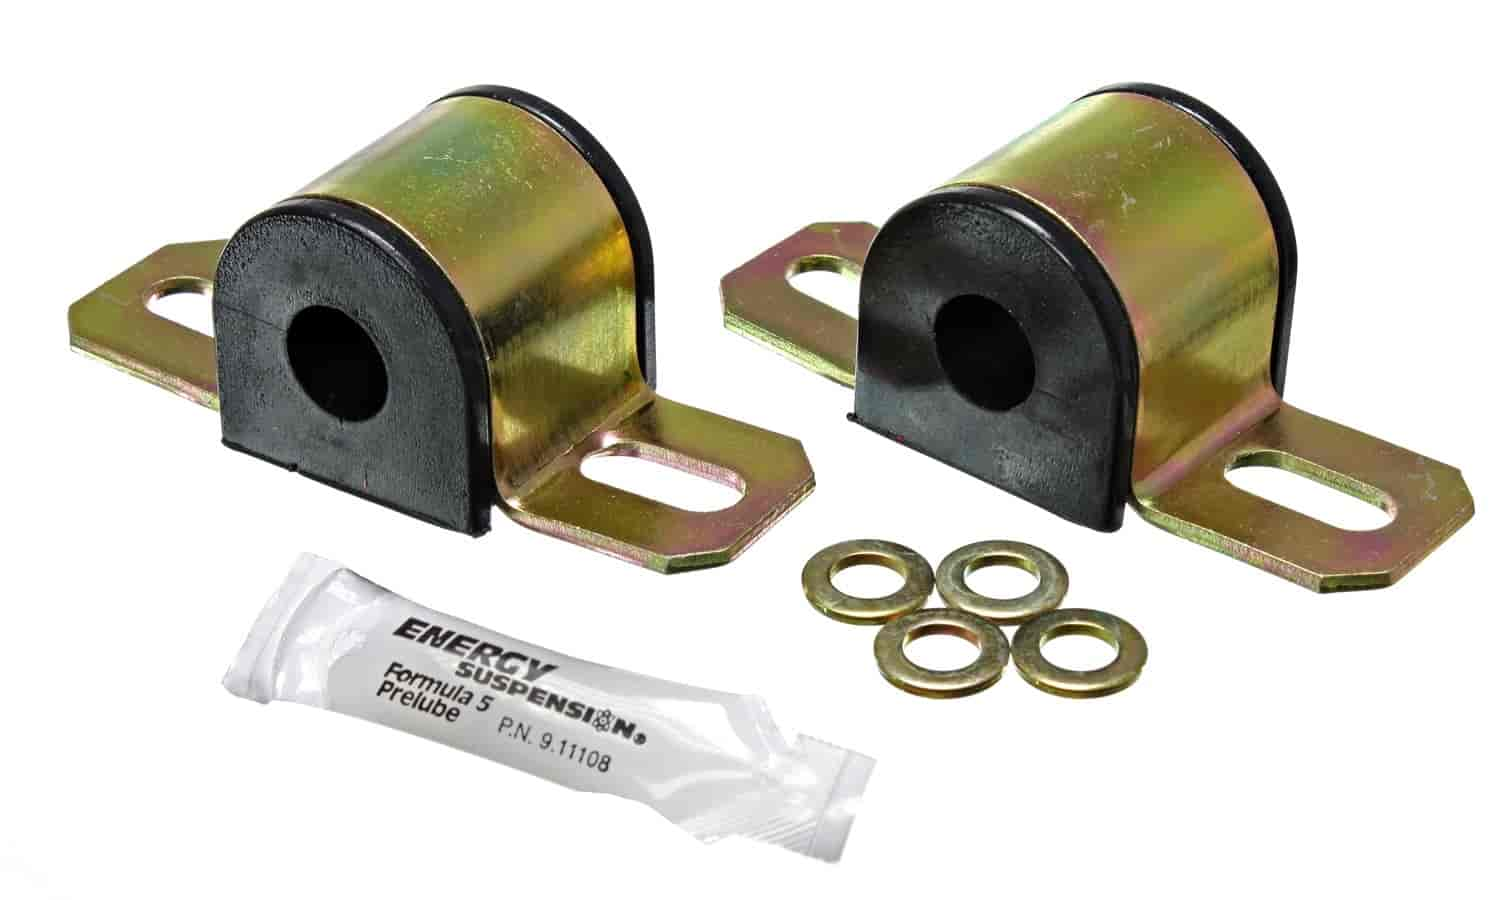 Energy Suspension 9-5105G